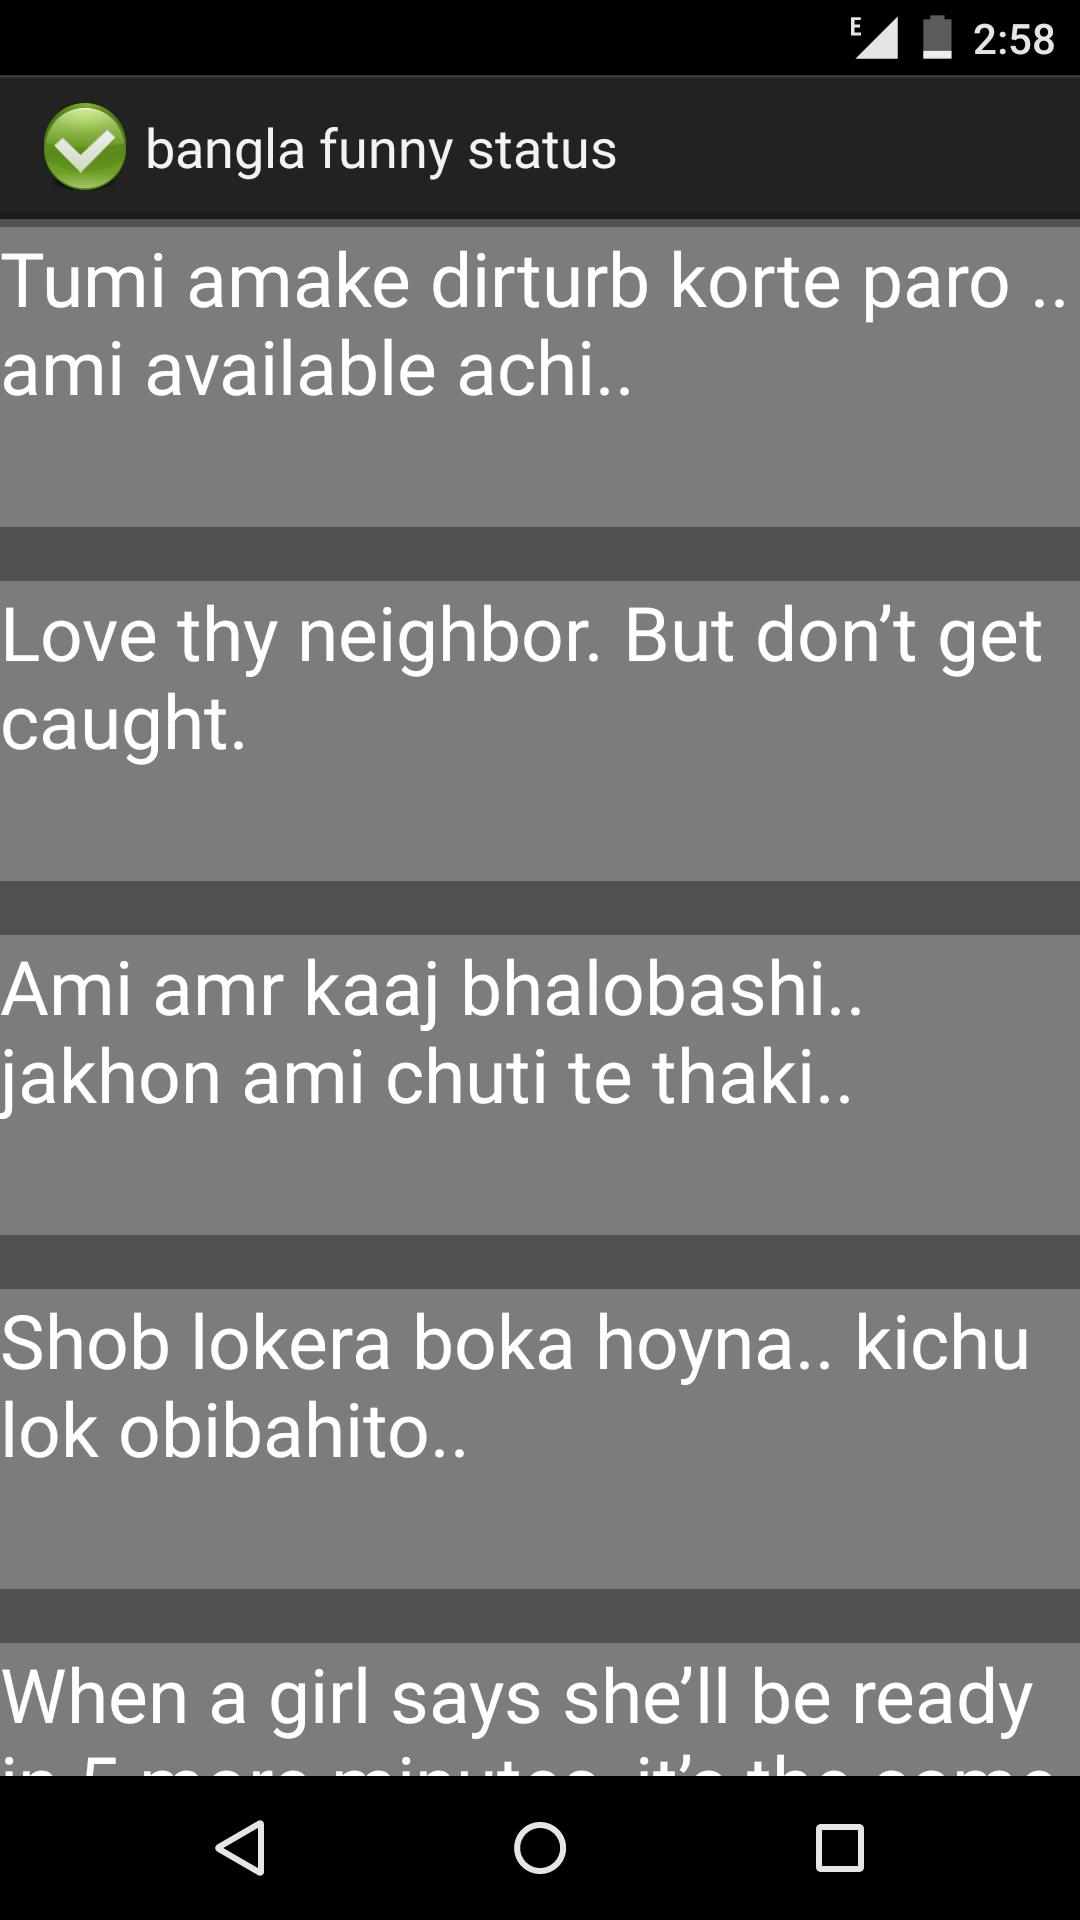 bangla funny status for Android - APK Download